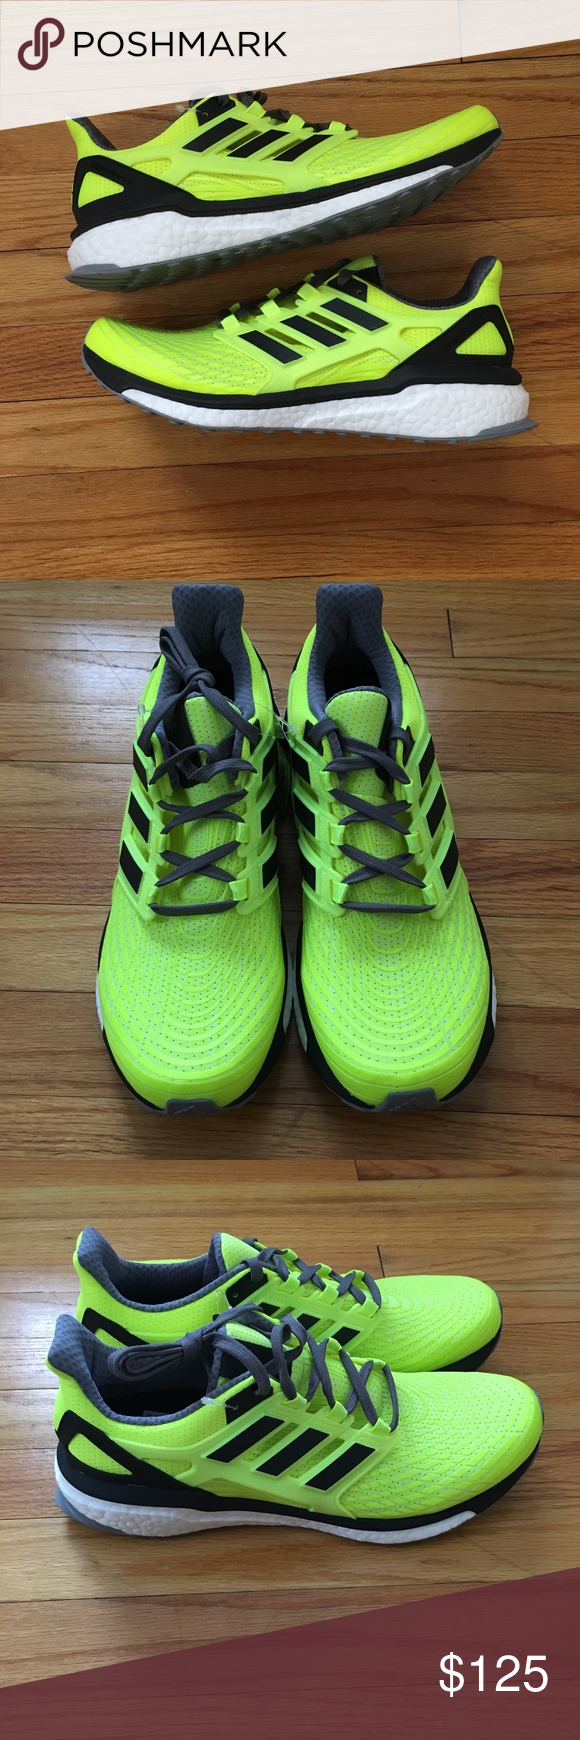 808803ace Adidas Energy Boost M Solar Yellow Size 10 BB3455 Brand new